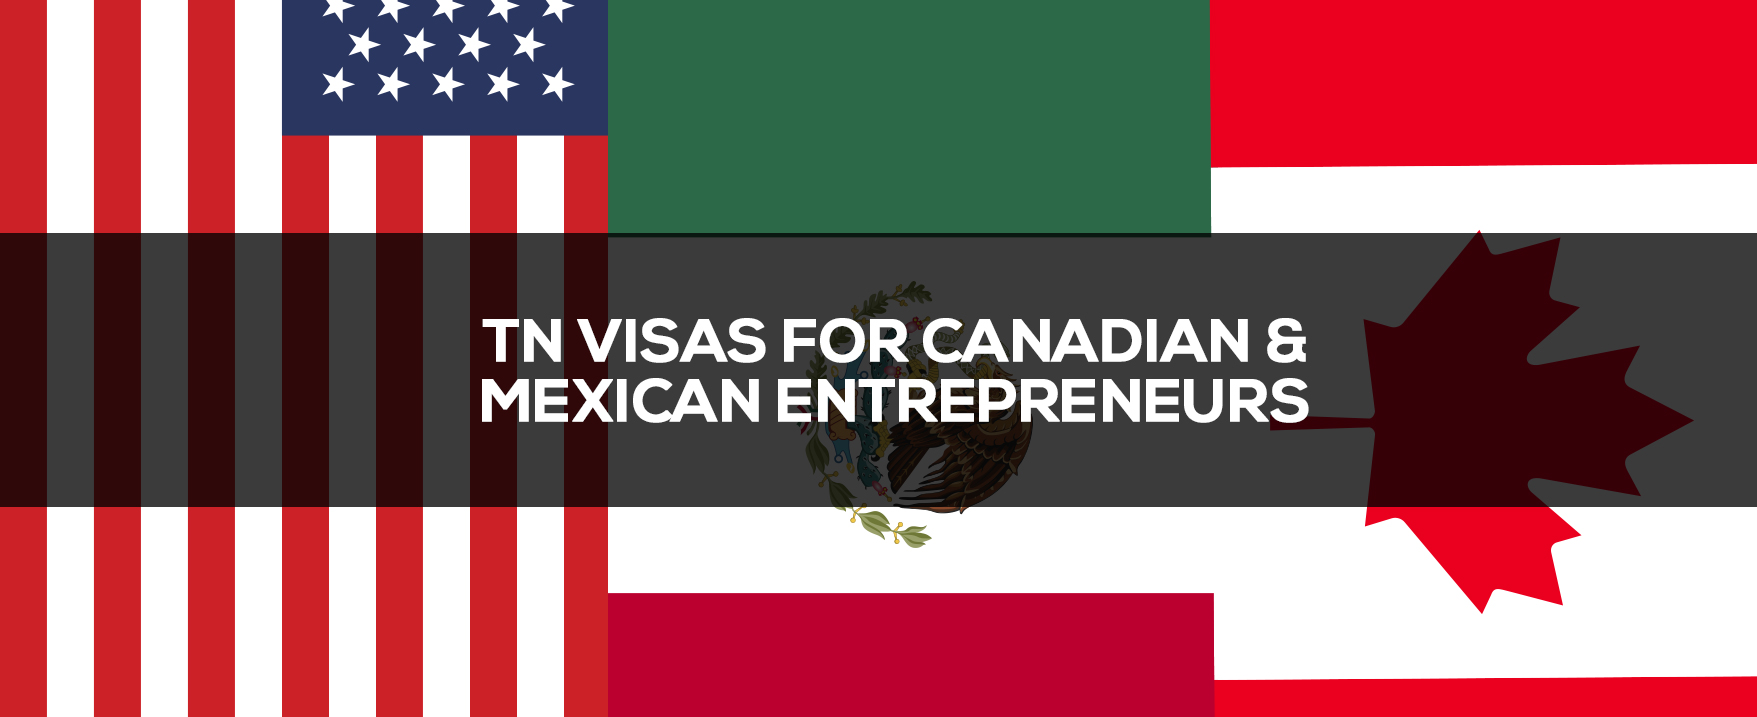 TN Visas for Canadian & Mexican Entrepreneurs